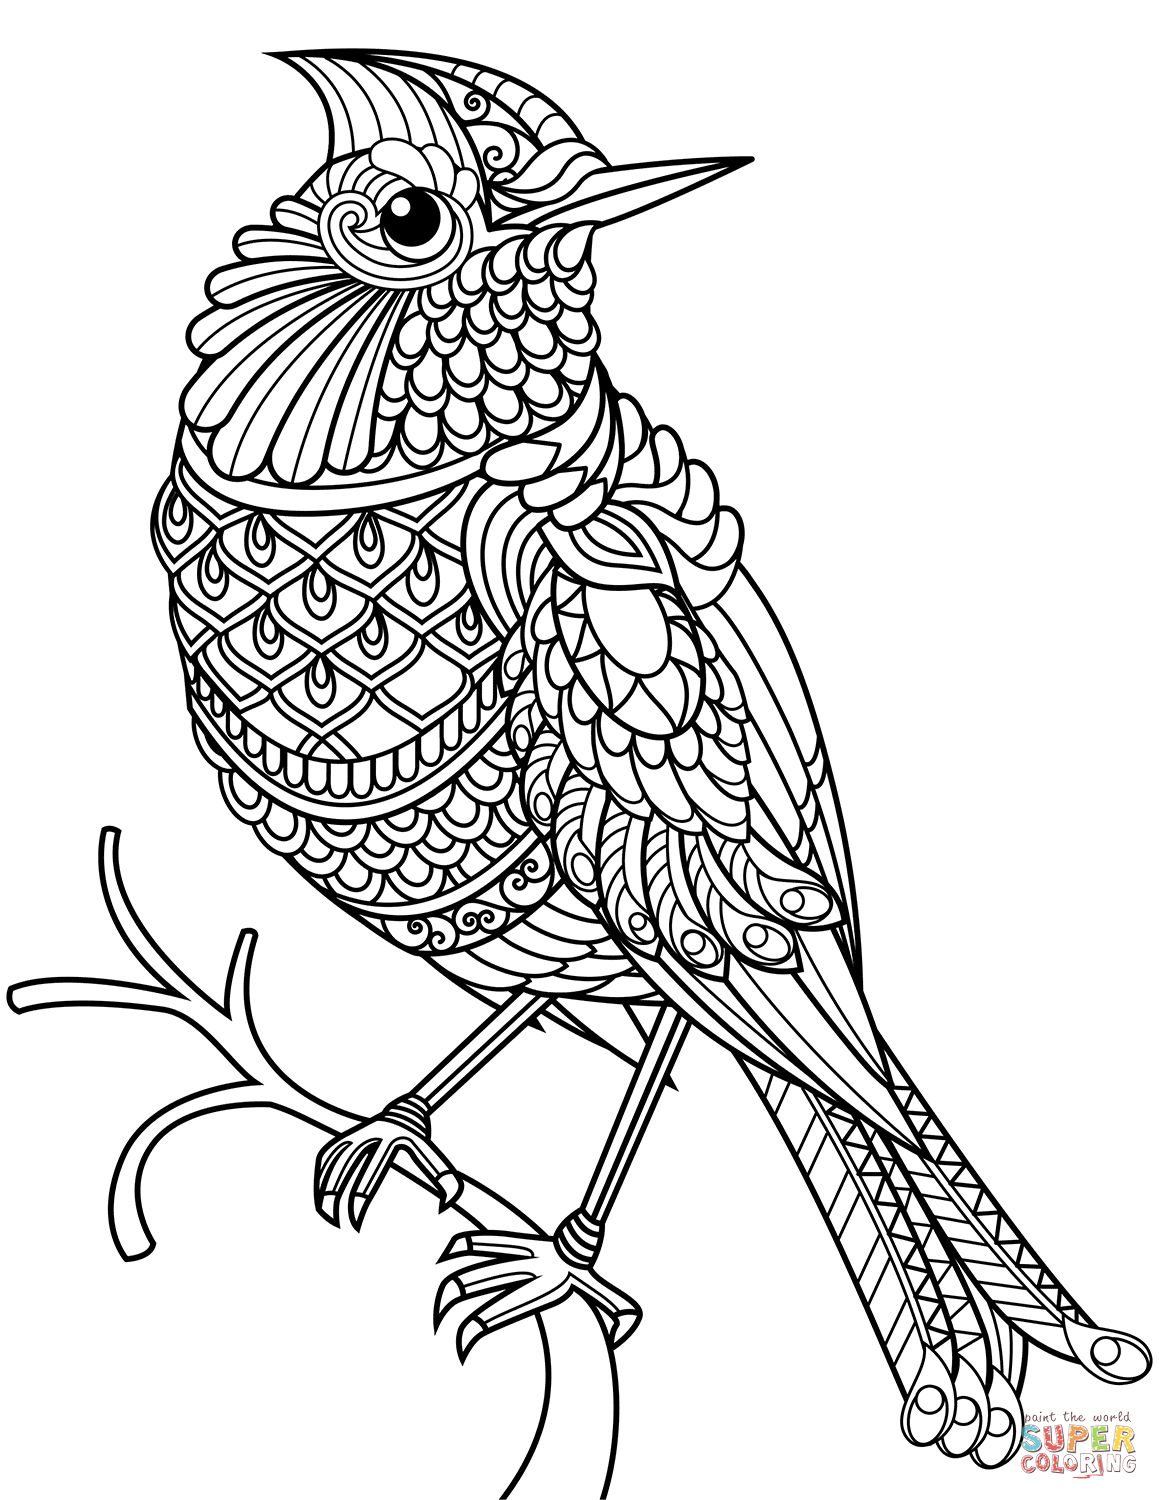 zentangle coloring pages free printable zentangle to print zentangle kids coloring pages pages zentangle free printable coloring